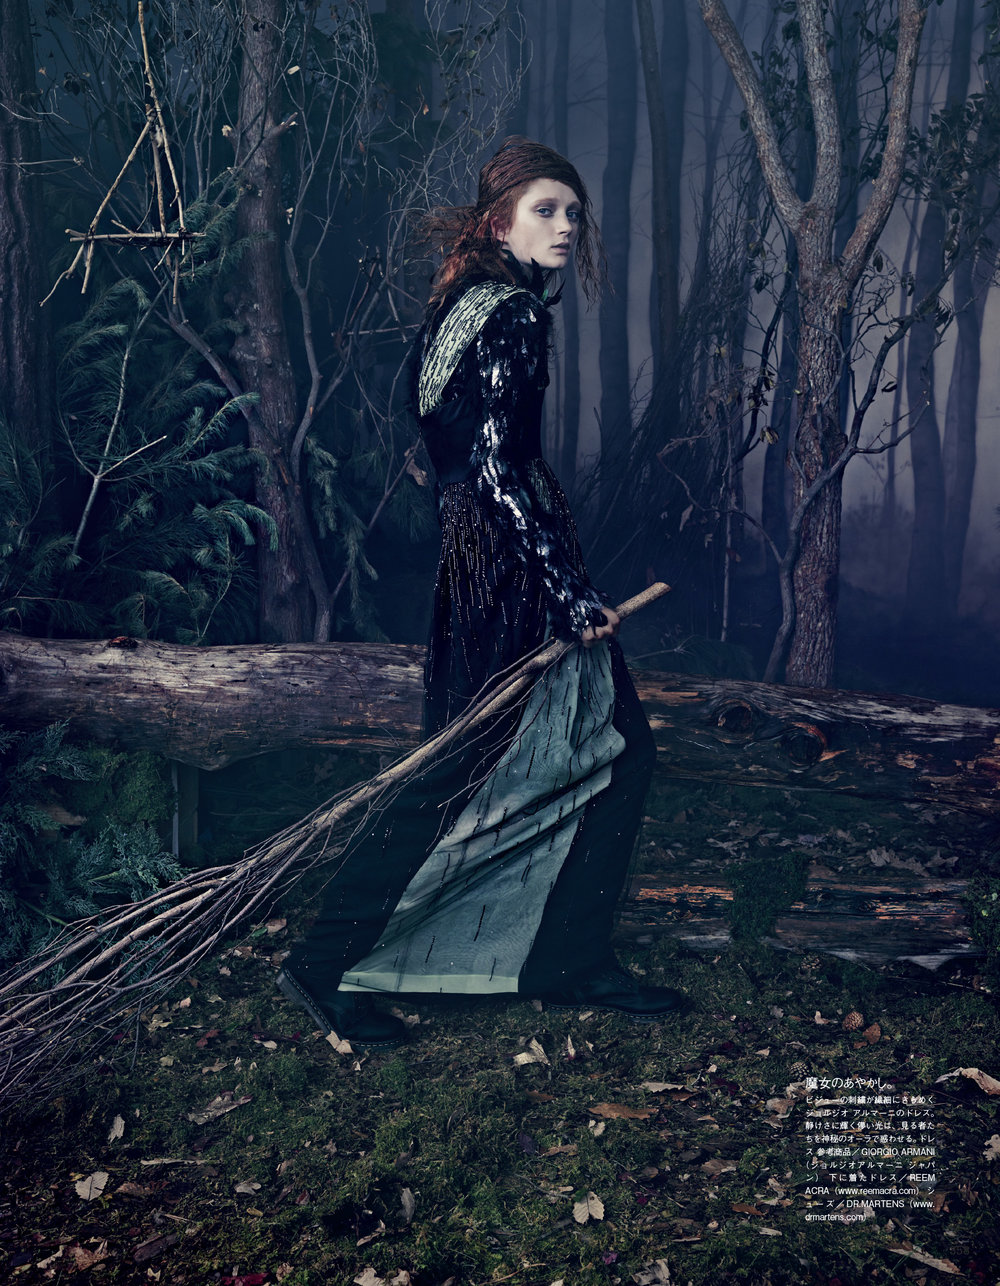 Giovanna-Battaglia-Into-The-Woods-Vogue-Japan-Emma-Summerton-07.jpg